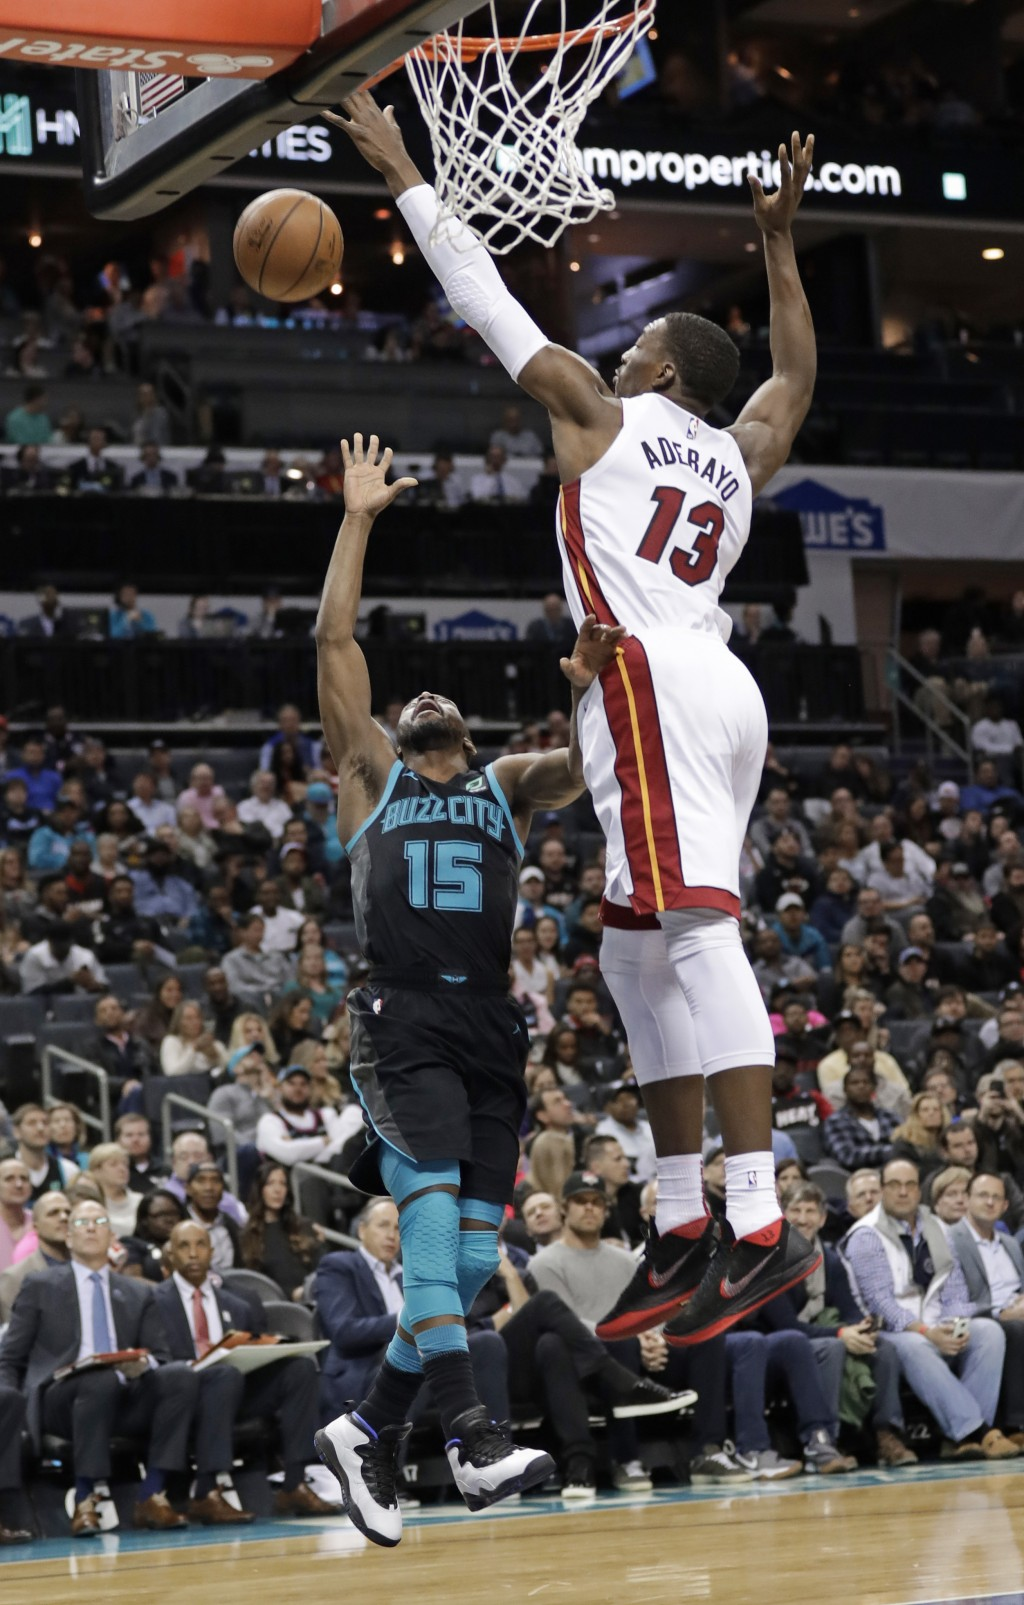 Charlotte Hornets' Kemba Walker (15) tries to shoot over Miami Heat's Bam Adebayo (13) during the first half of an NBA basketball game in Charlotte, N